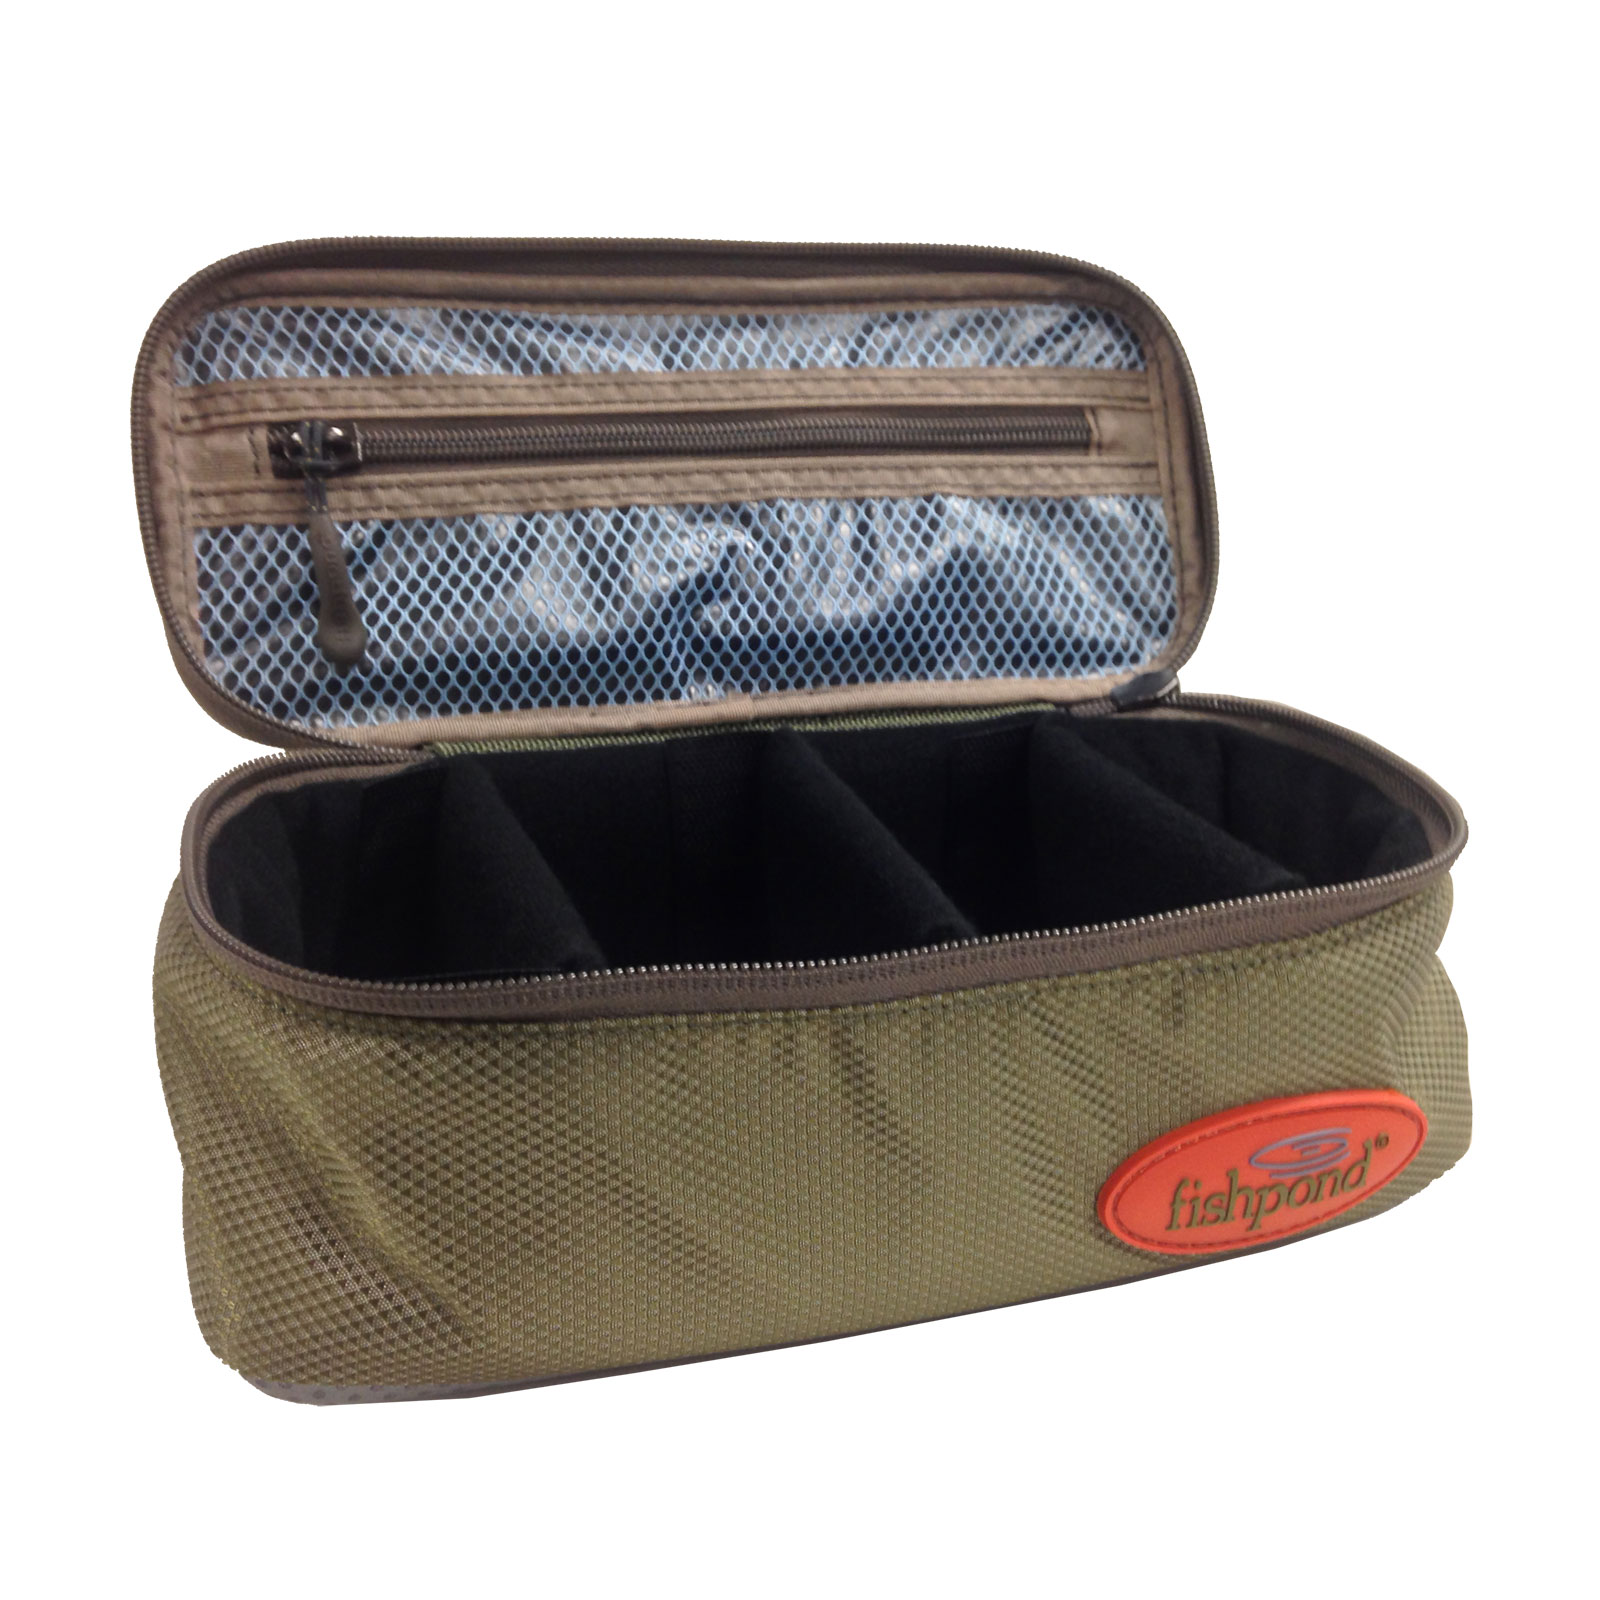 Fishpond Sweetwater Fly Fishing Reel Cases Ebay